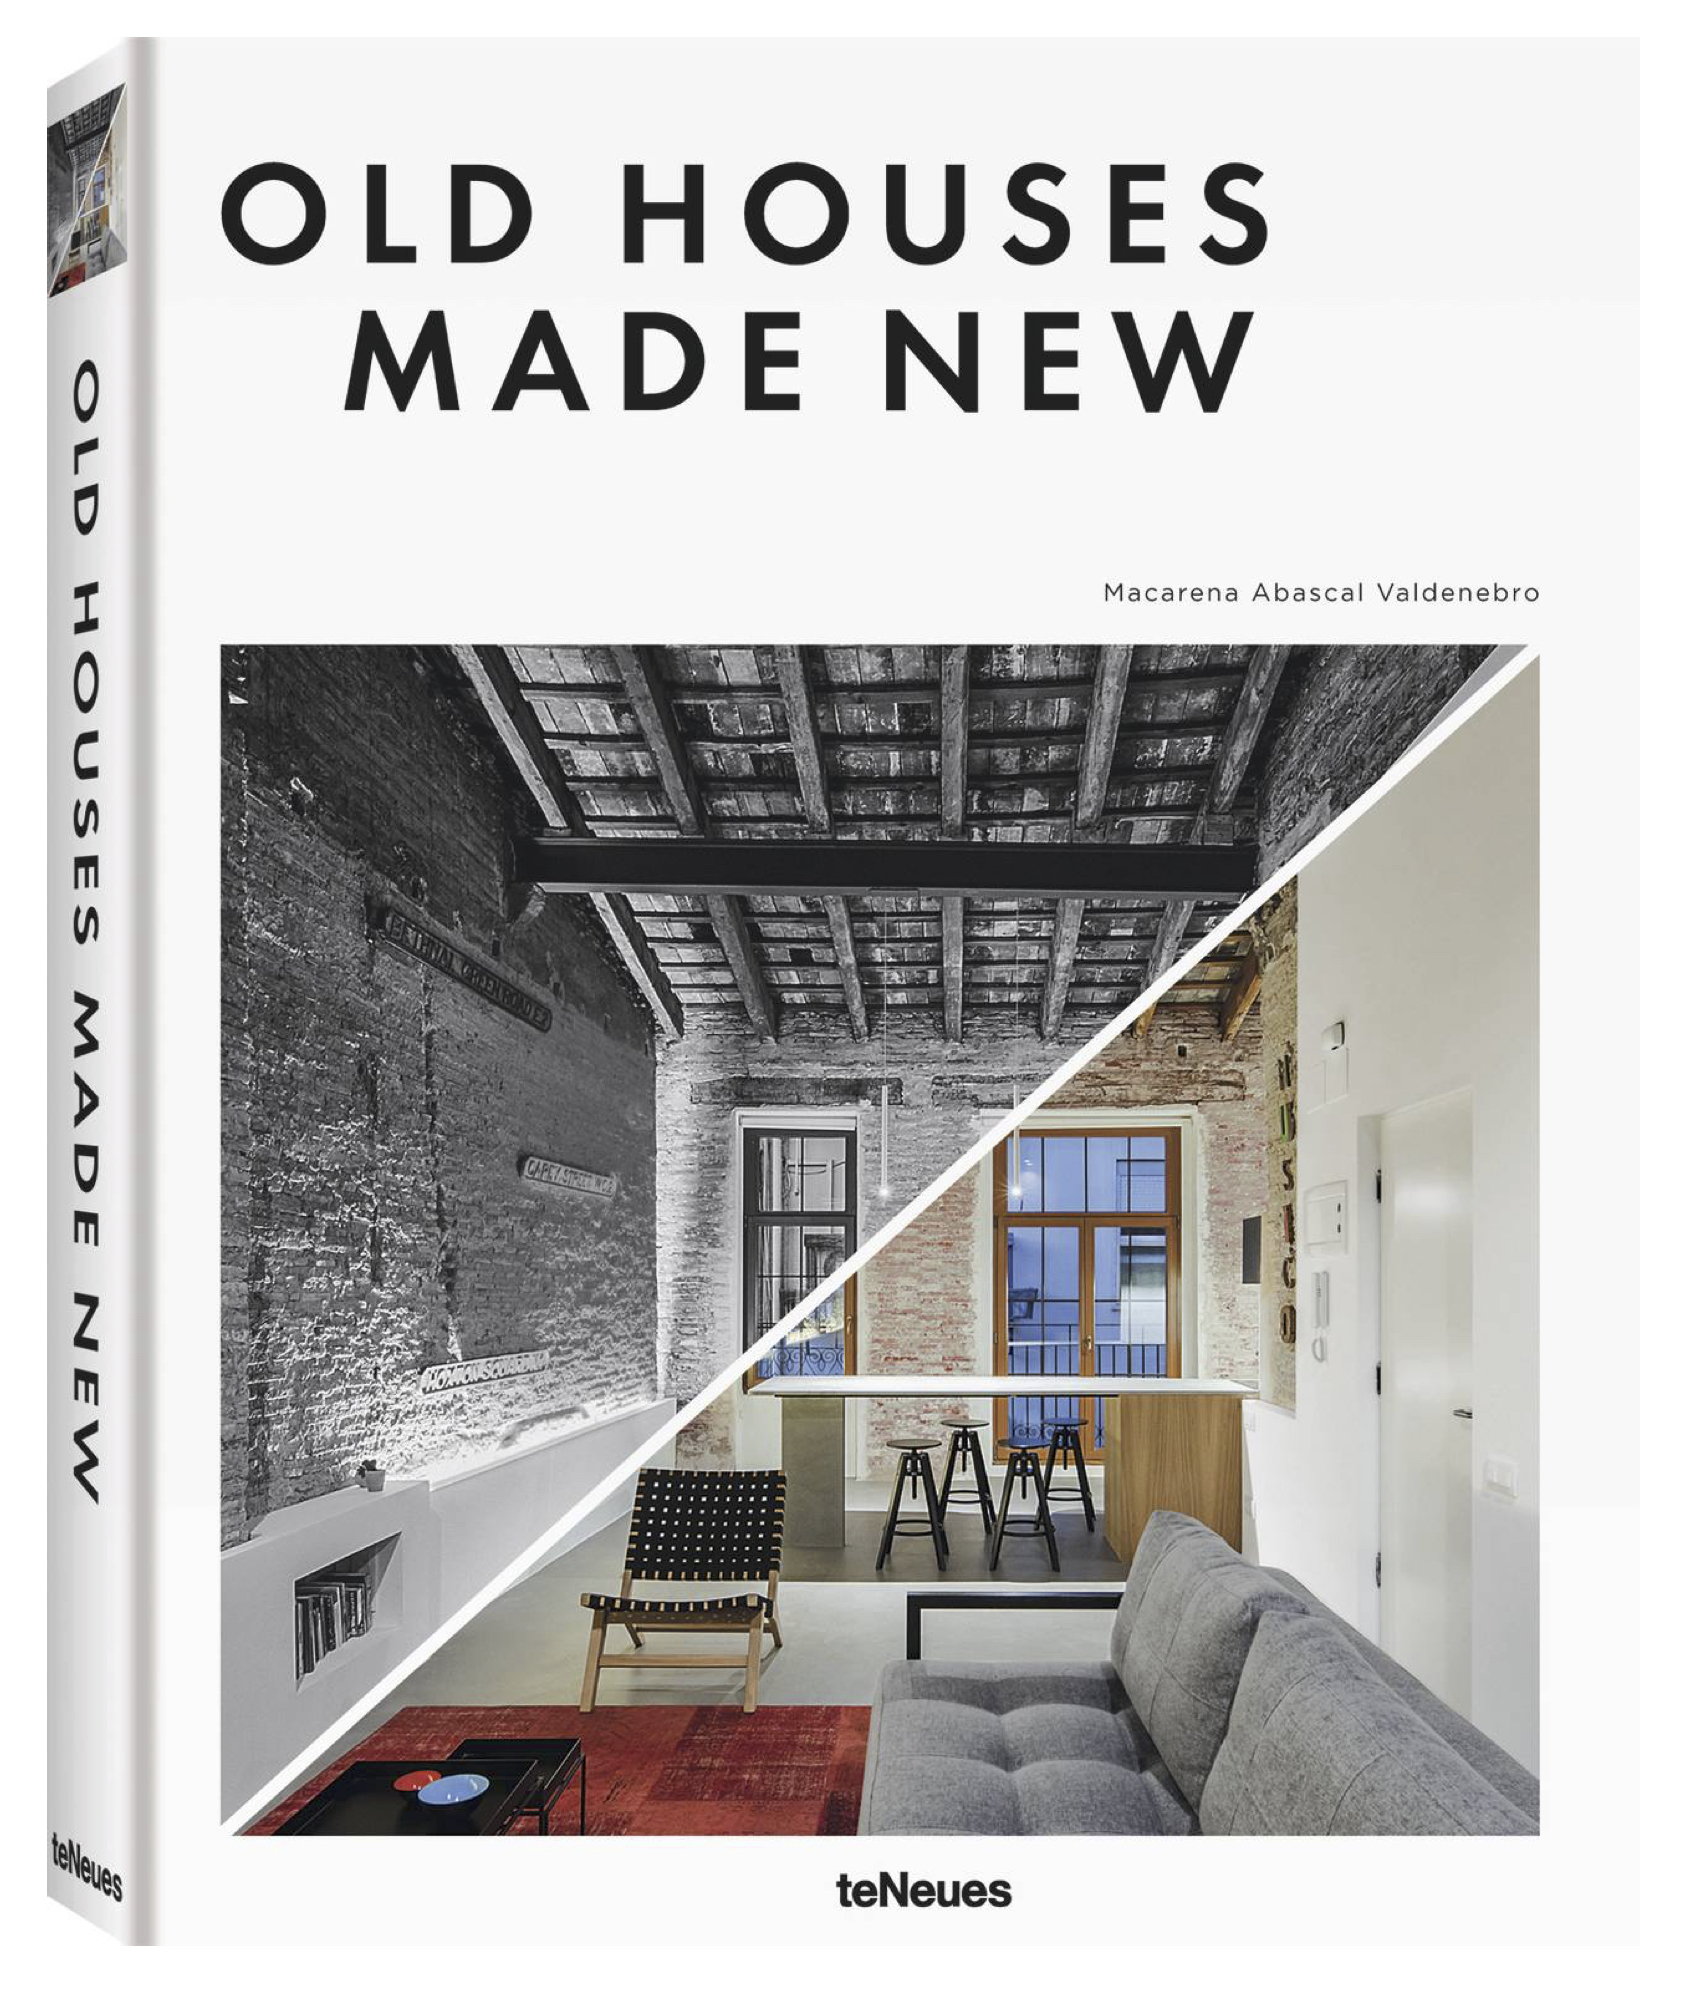 old houses made new _2018 book cover 71131_C.jpg (1280×1532) (1).jpg